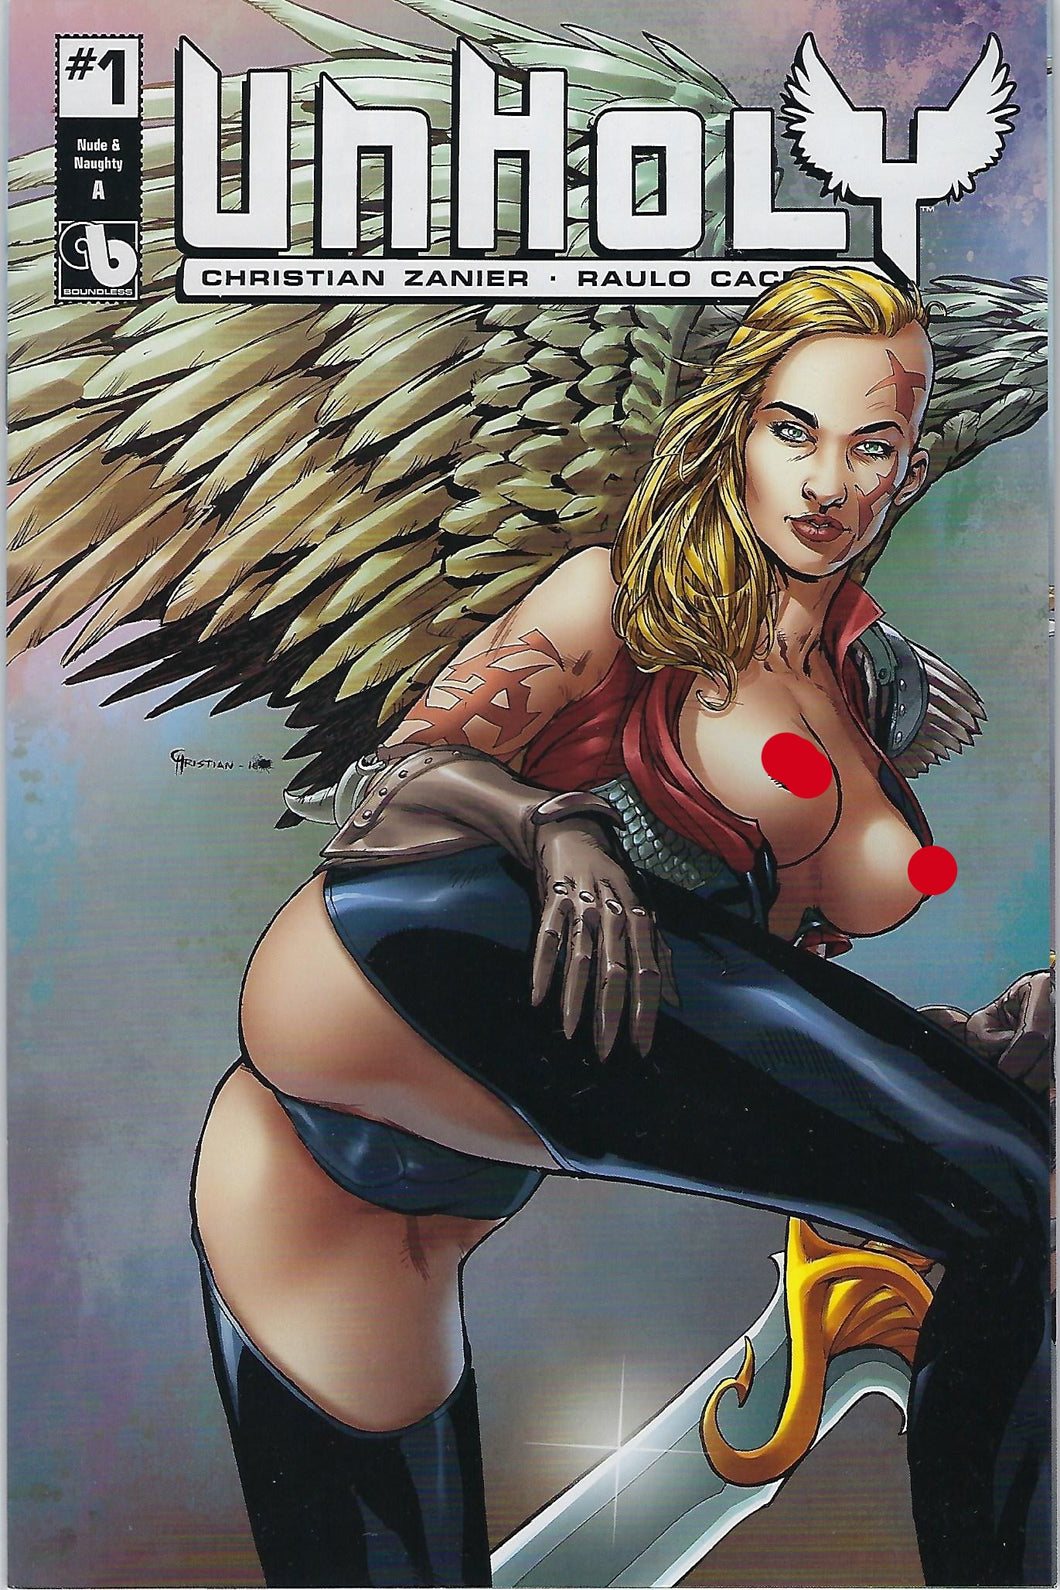 Unholy # 1 Nude & Naughty Variant Cover